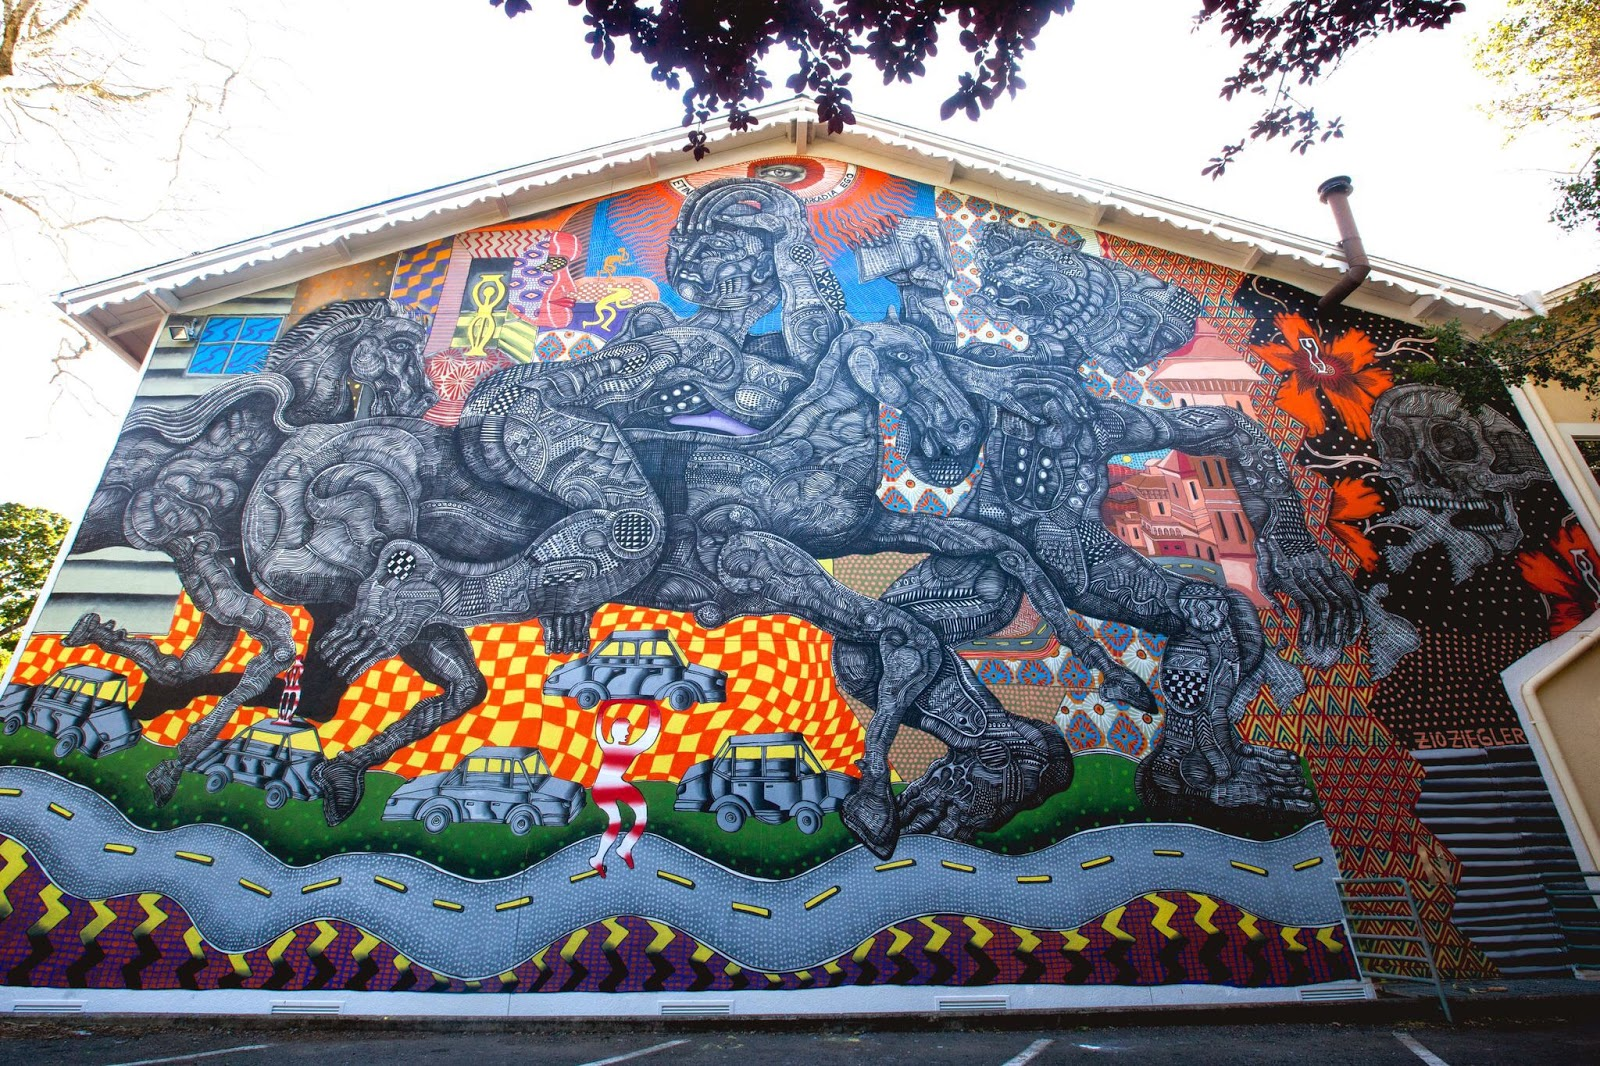 Our friend Zio Ziegler recently spent some time in the city of Ross in California where he worked his magic on a massive new piece.